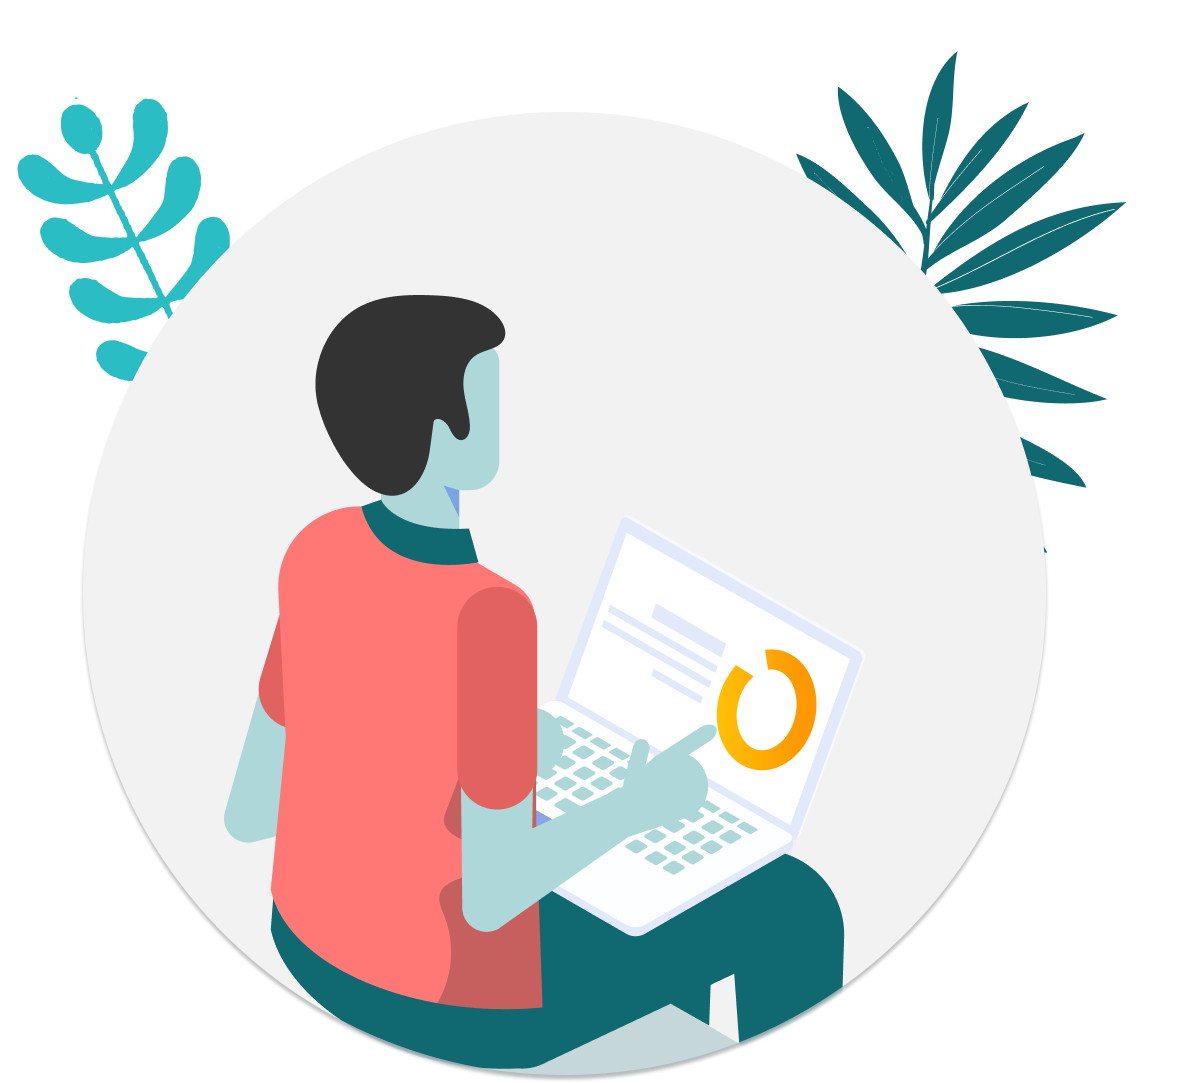 Illustration of a person with an open laptop with a security dashboard